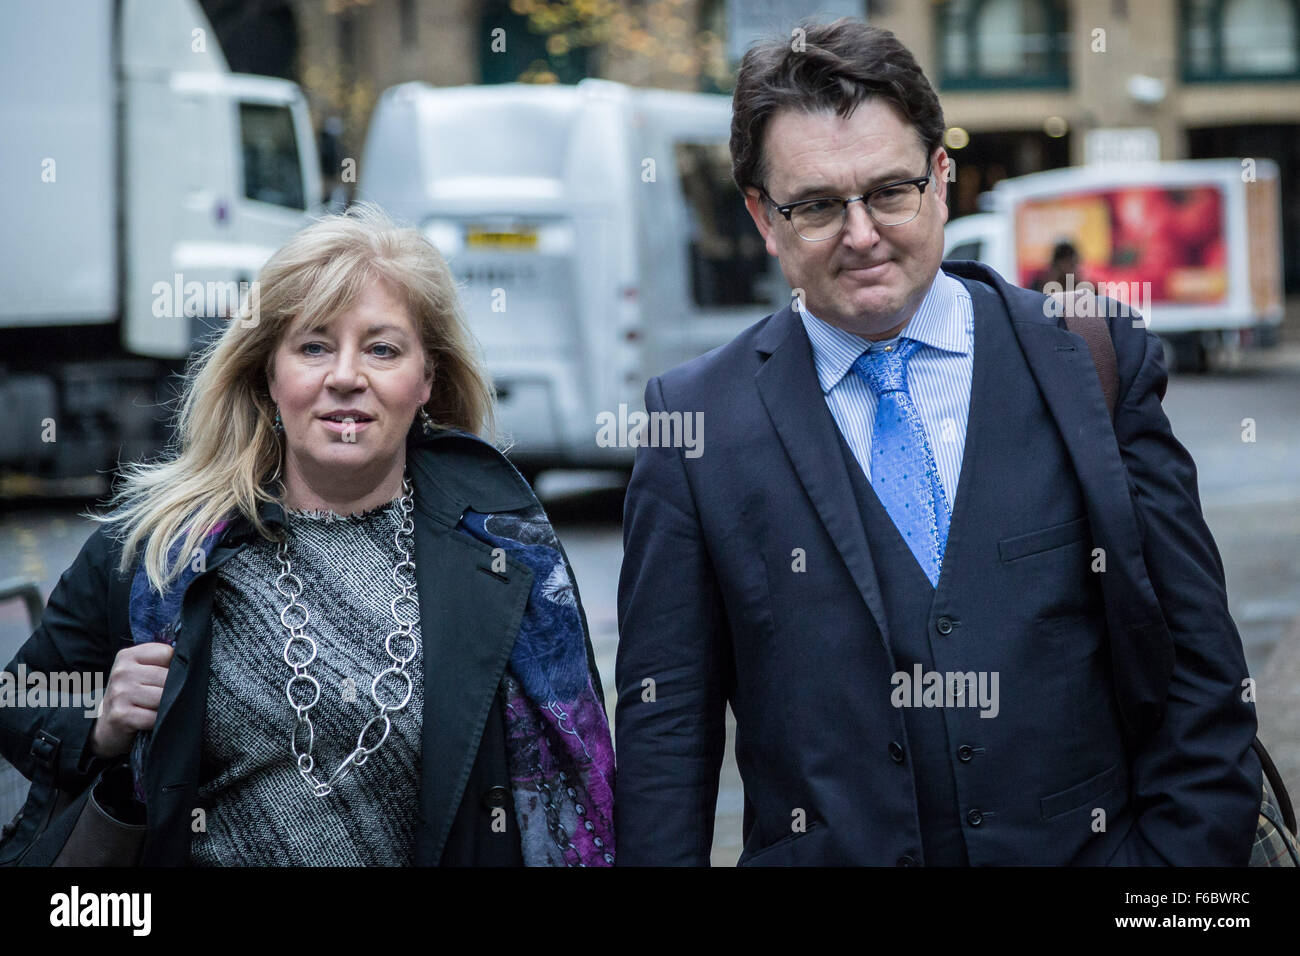 London, UK. 16th November, 2015. Andrew Fitch-Holland, criminal barrister and Chris Cairns' co-defendant arrives Stock Photo